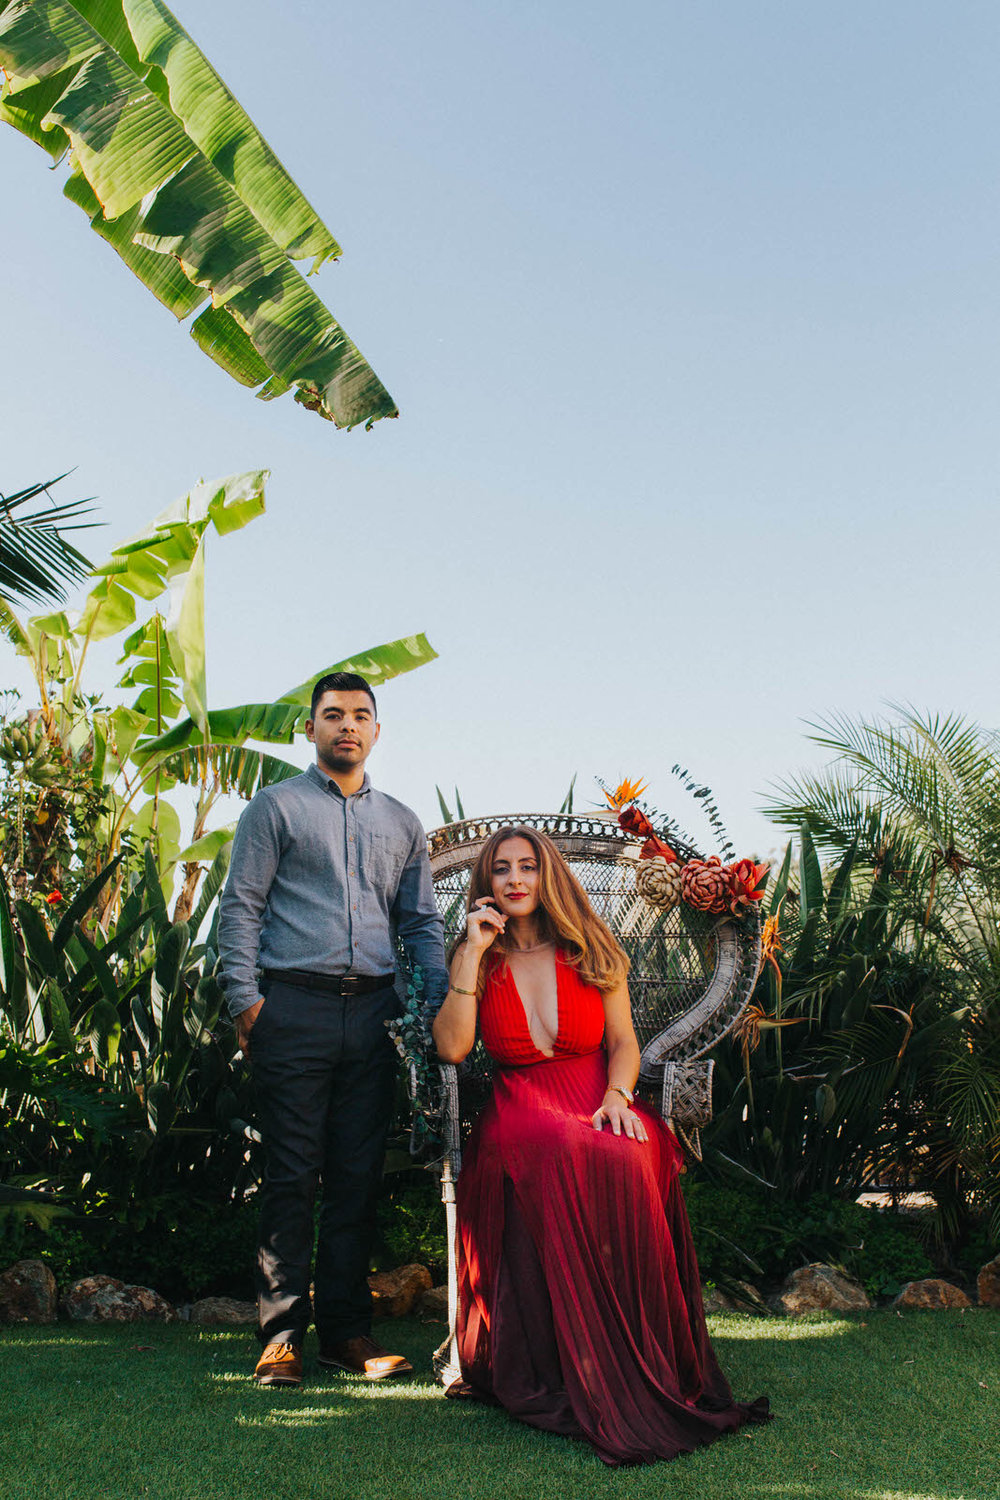 San Diego Couples Session |SamErica Studios